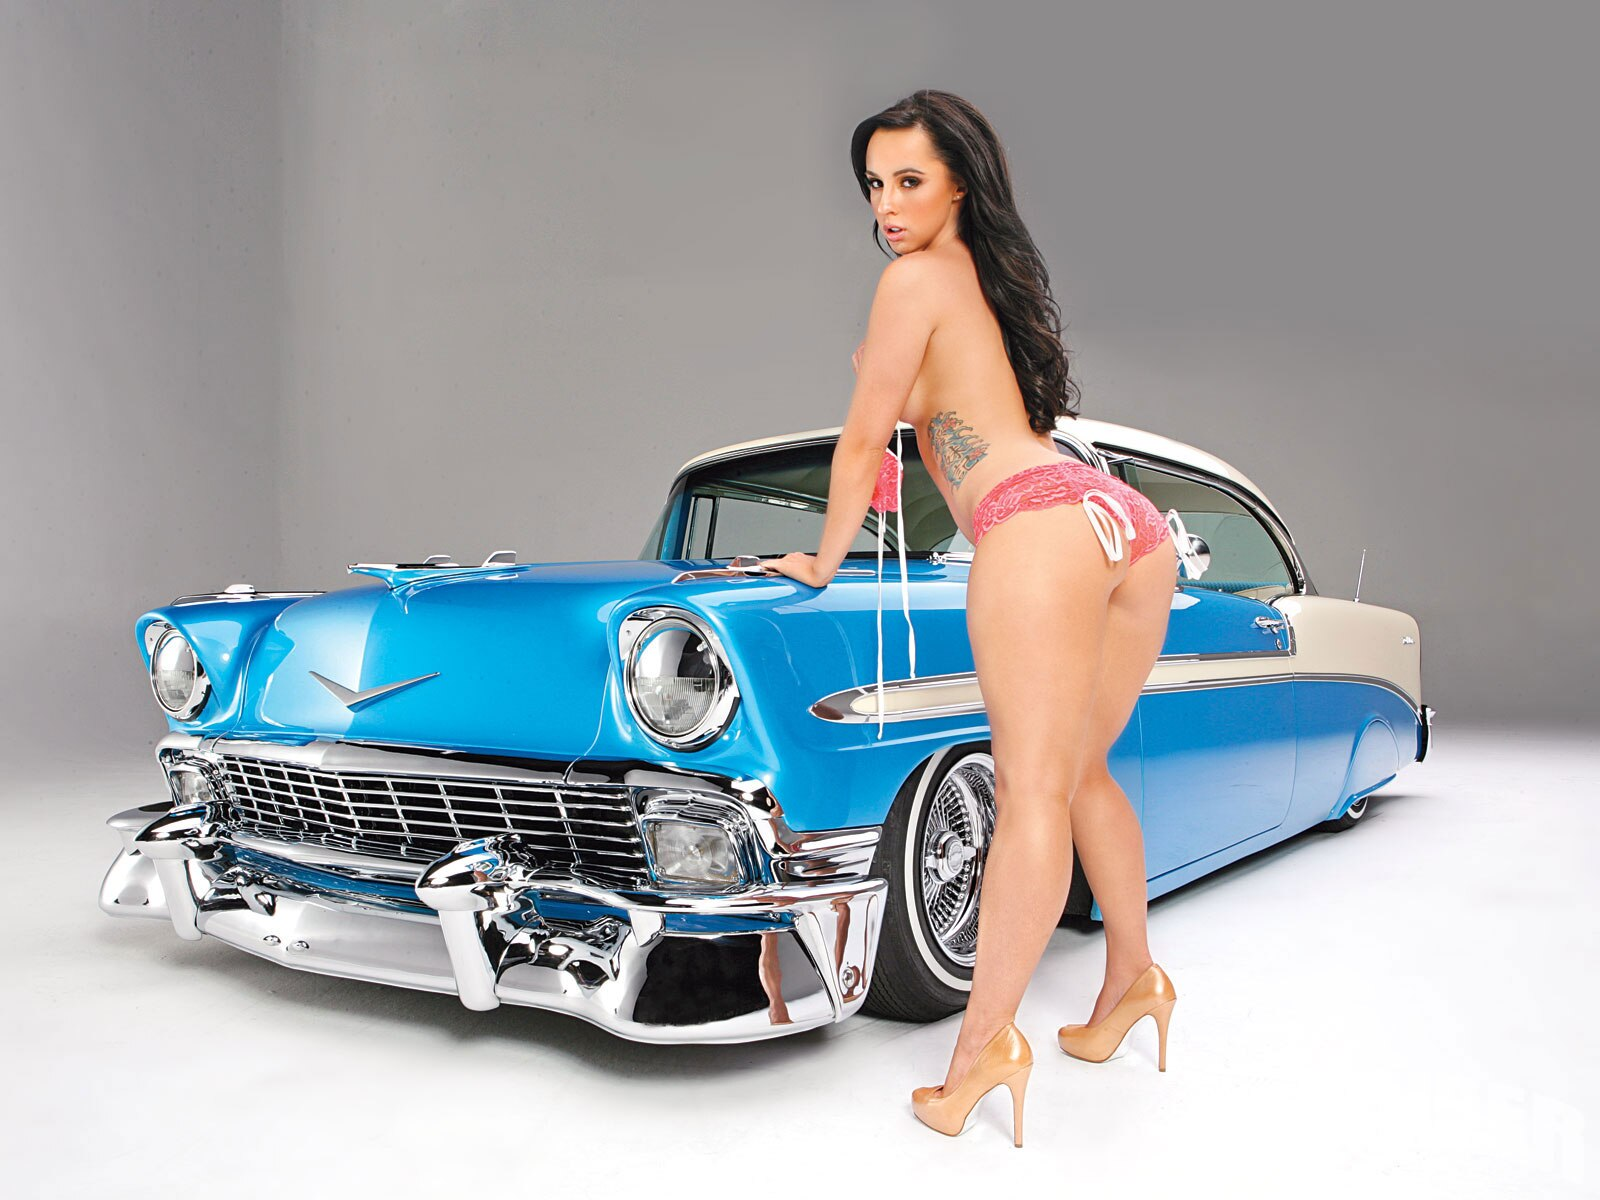 1105-lrms-02-o-taisha-marie-lowrider-girls-model-2